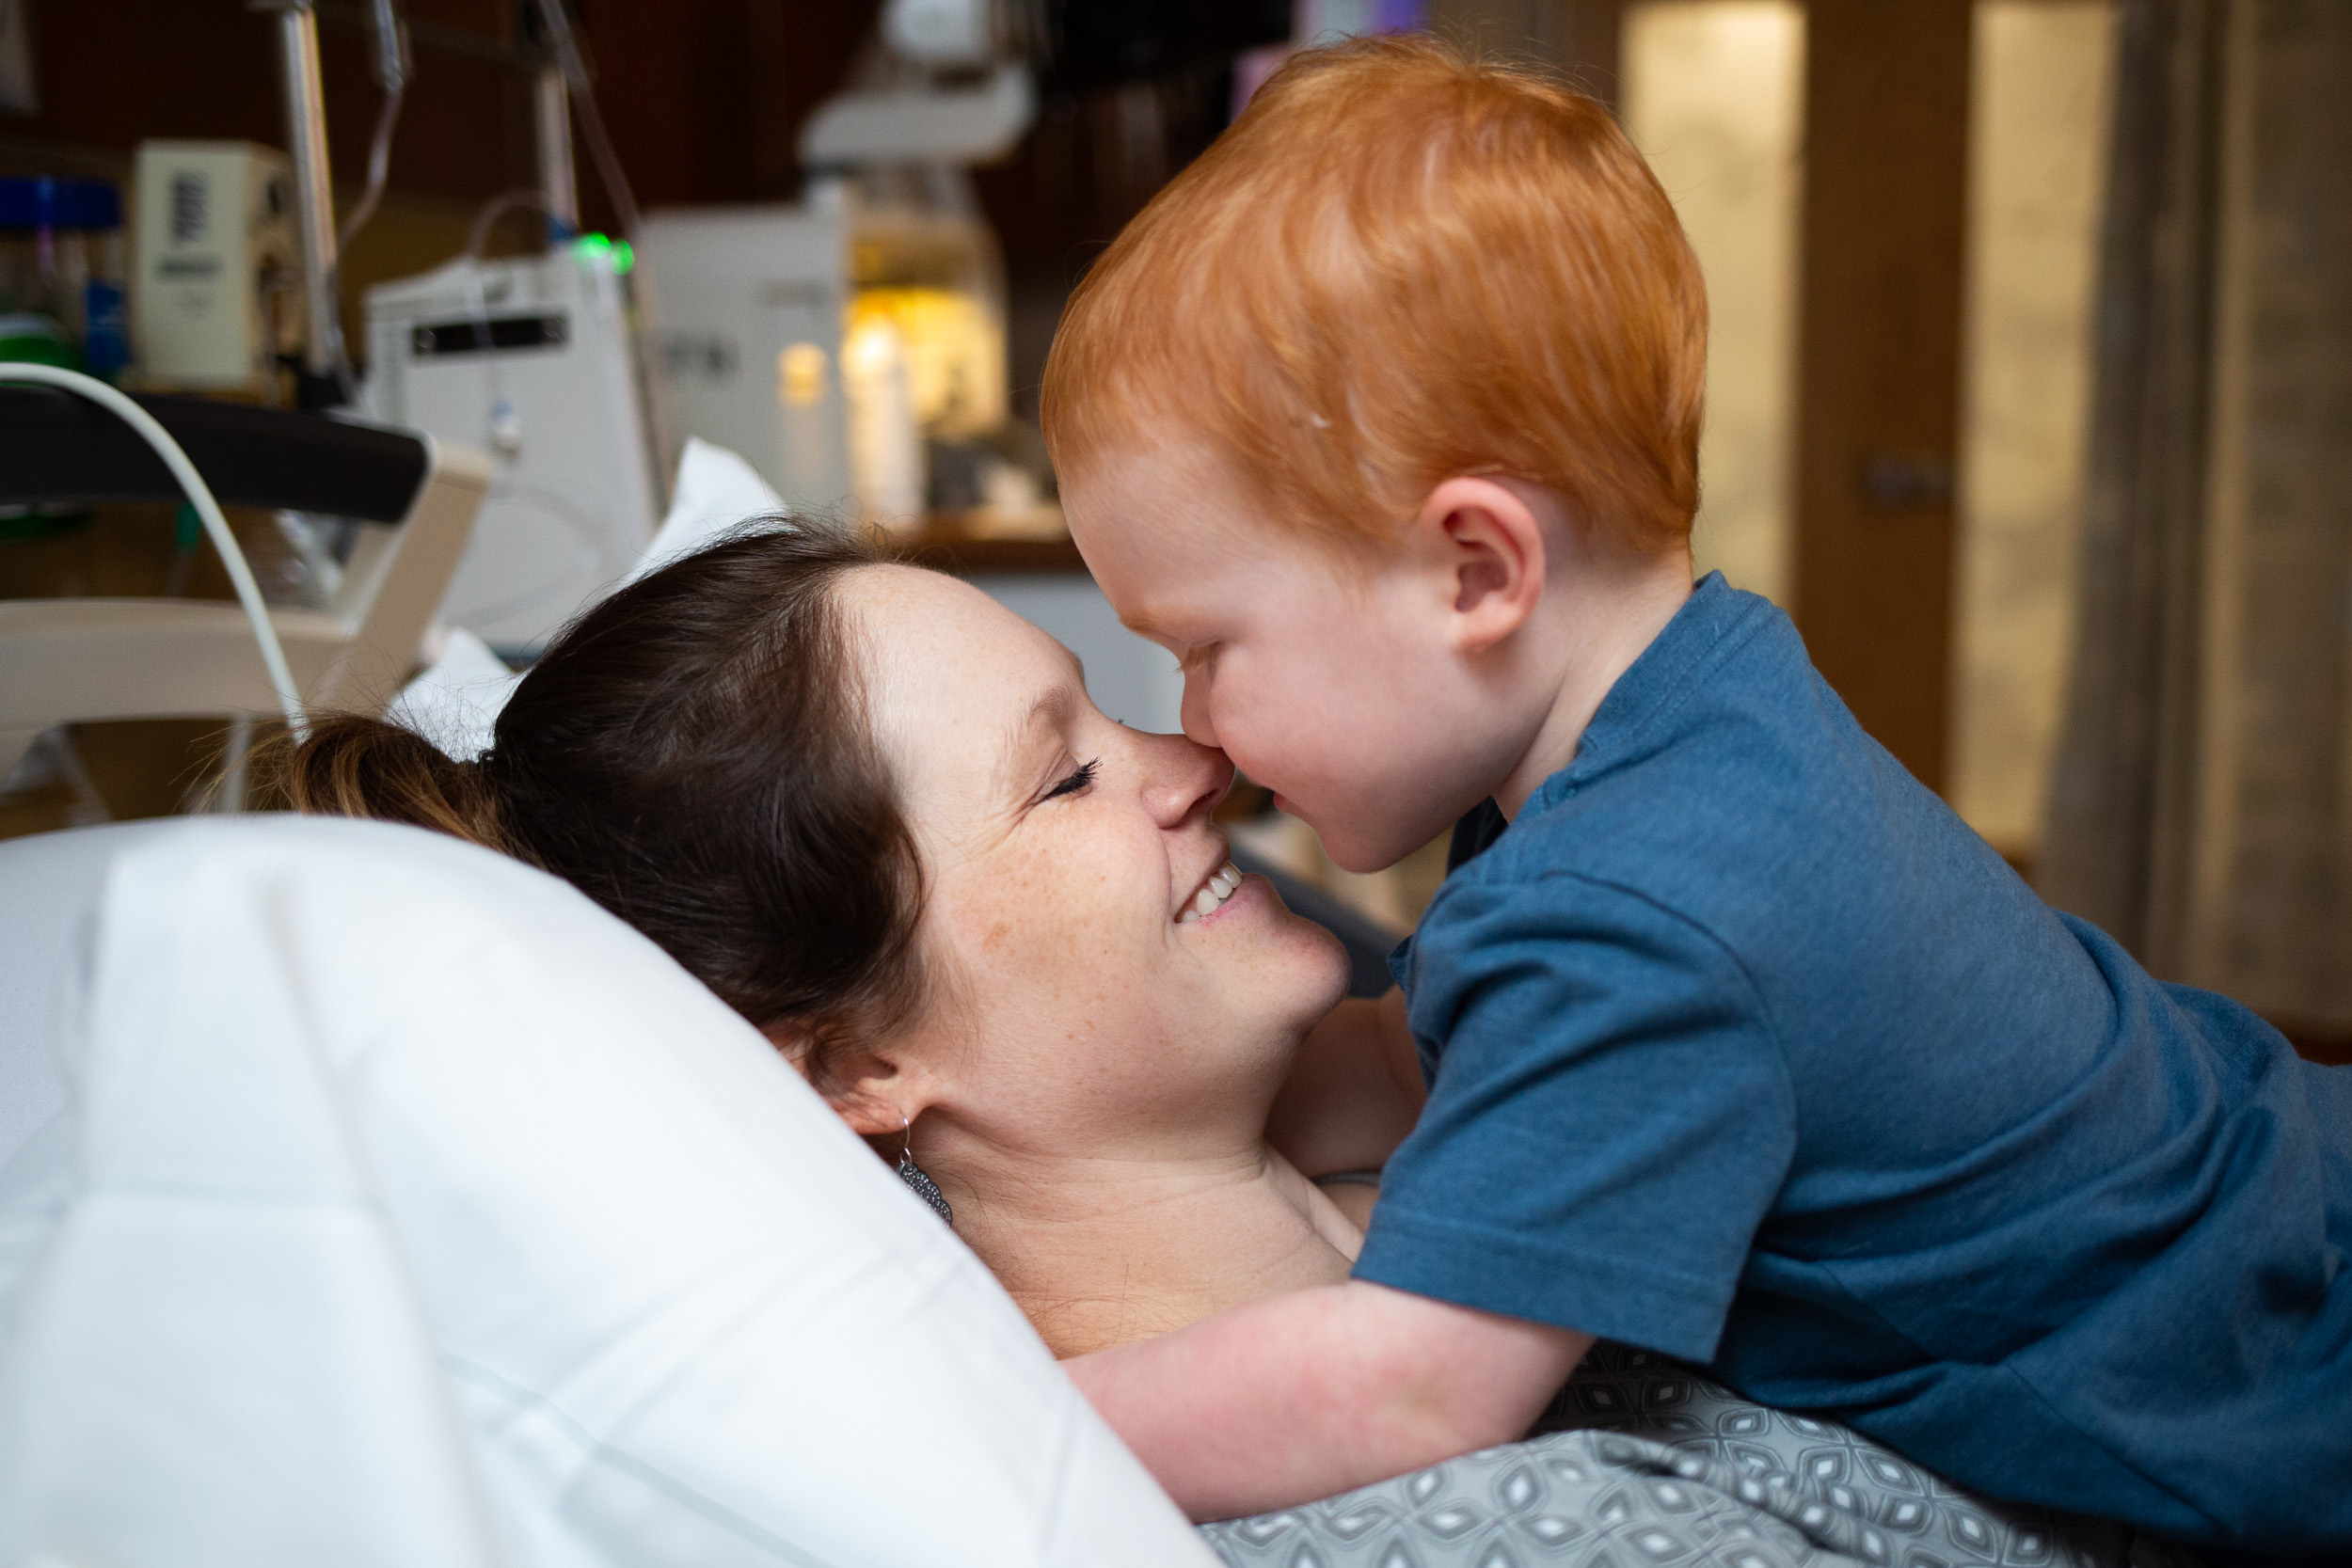 laboring mom with son during hospital stay before birth